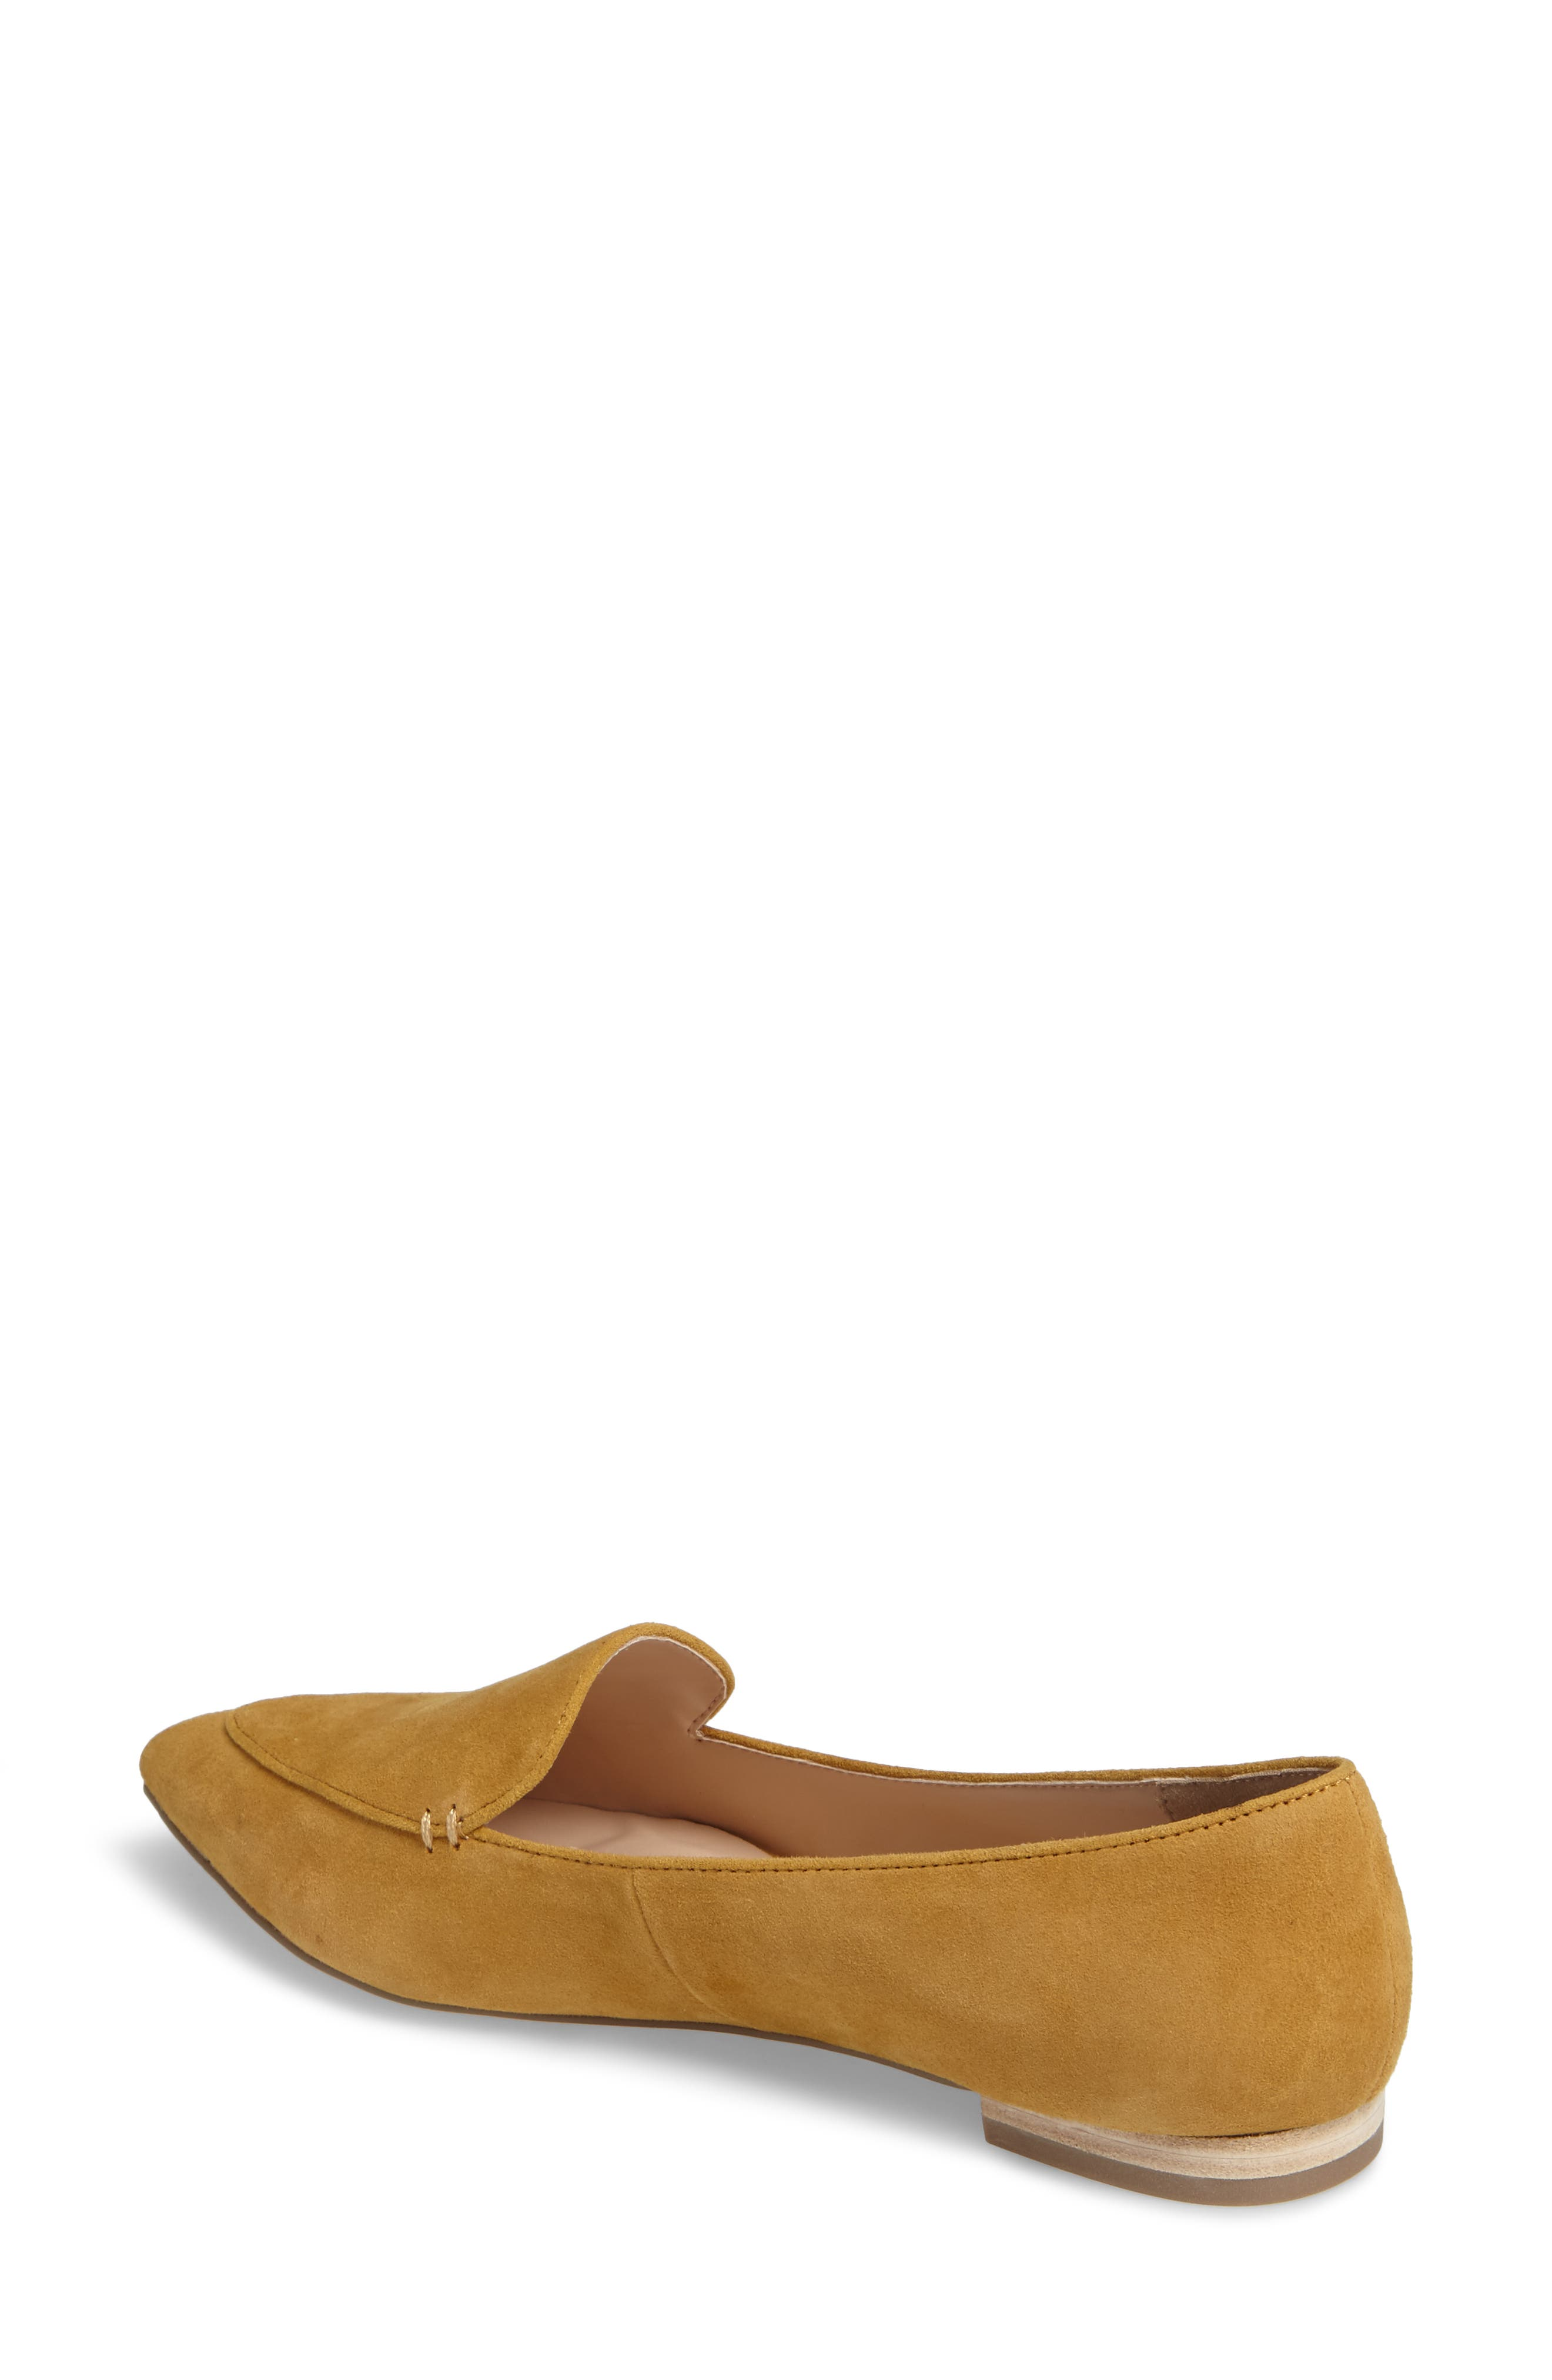 'Cammila' Pointy Toe Loafer,                             Alternate thumbnail 17, color,